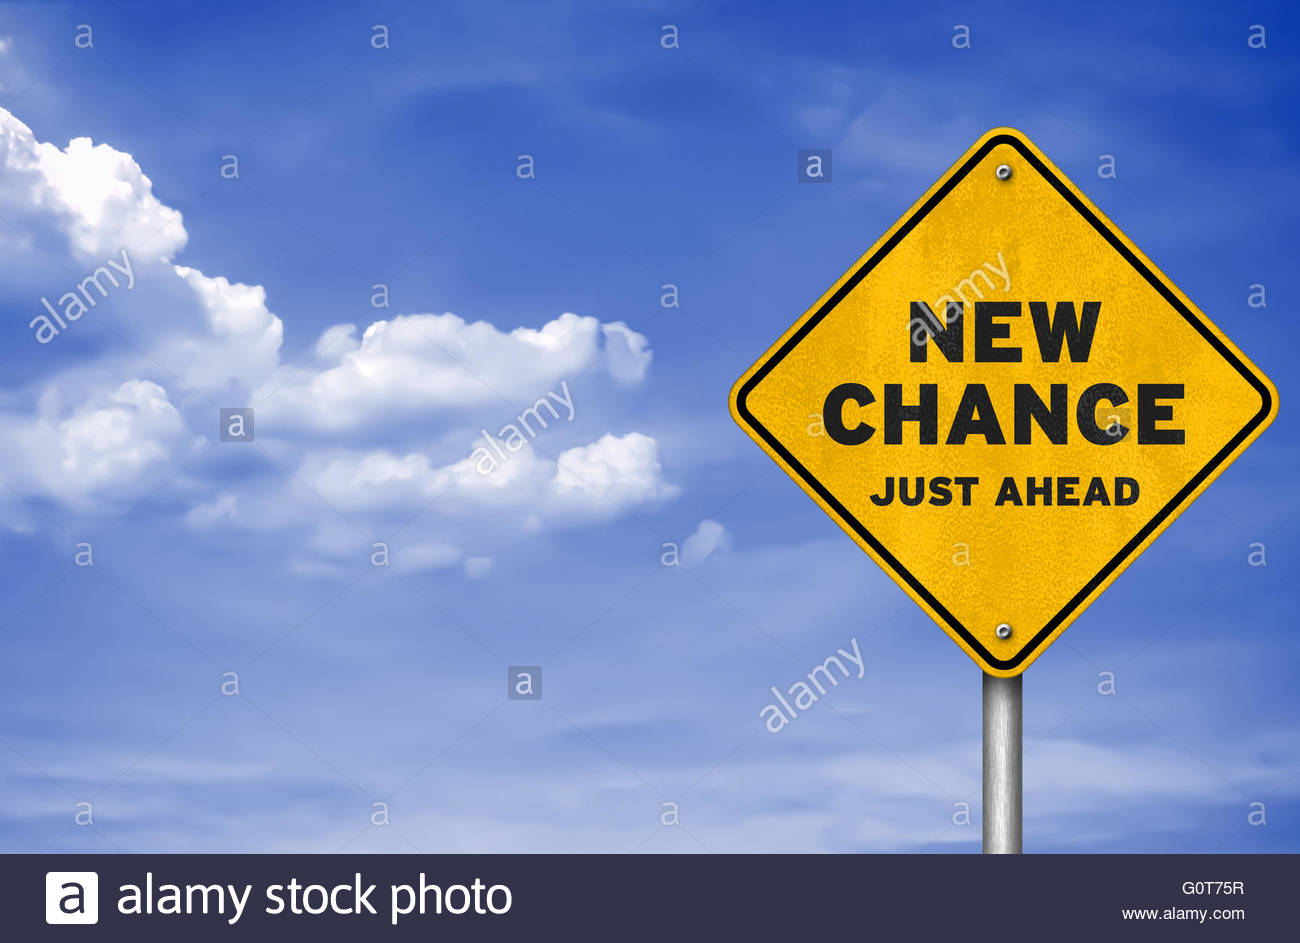 New change - road sign concept - Stock Image